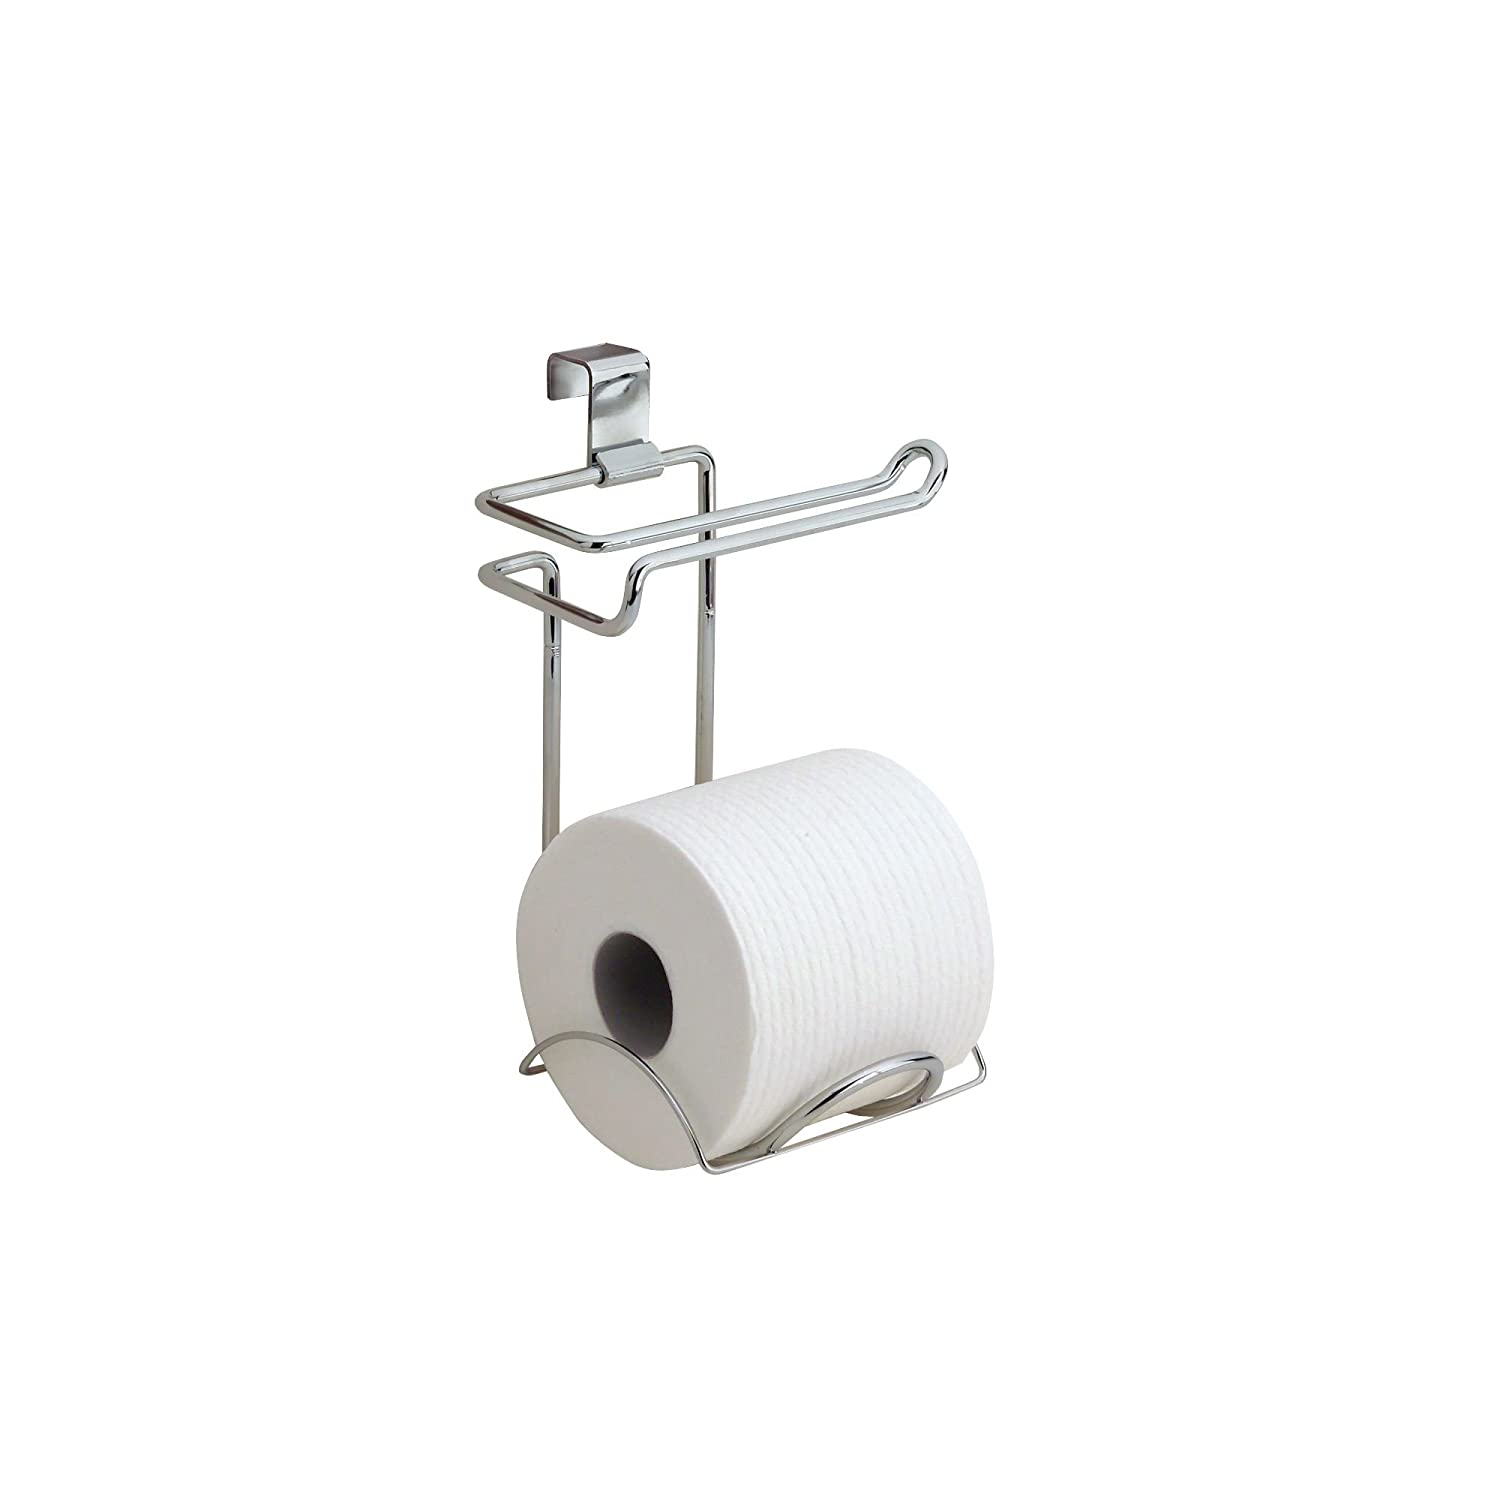 Amazoncom Interdesign Classico Bathroom Over Tank Toilet Paper